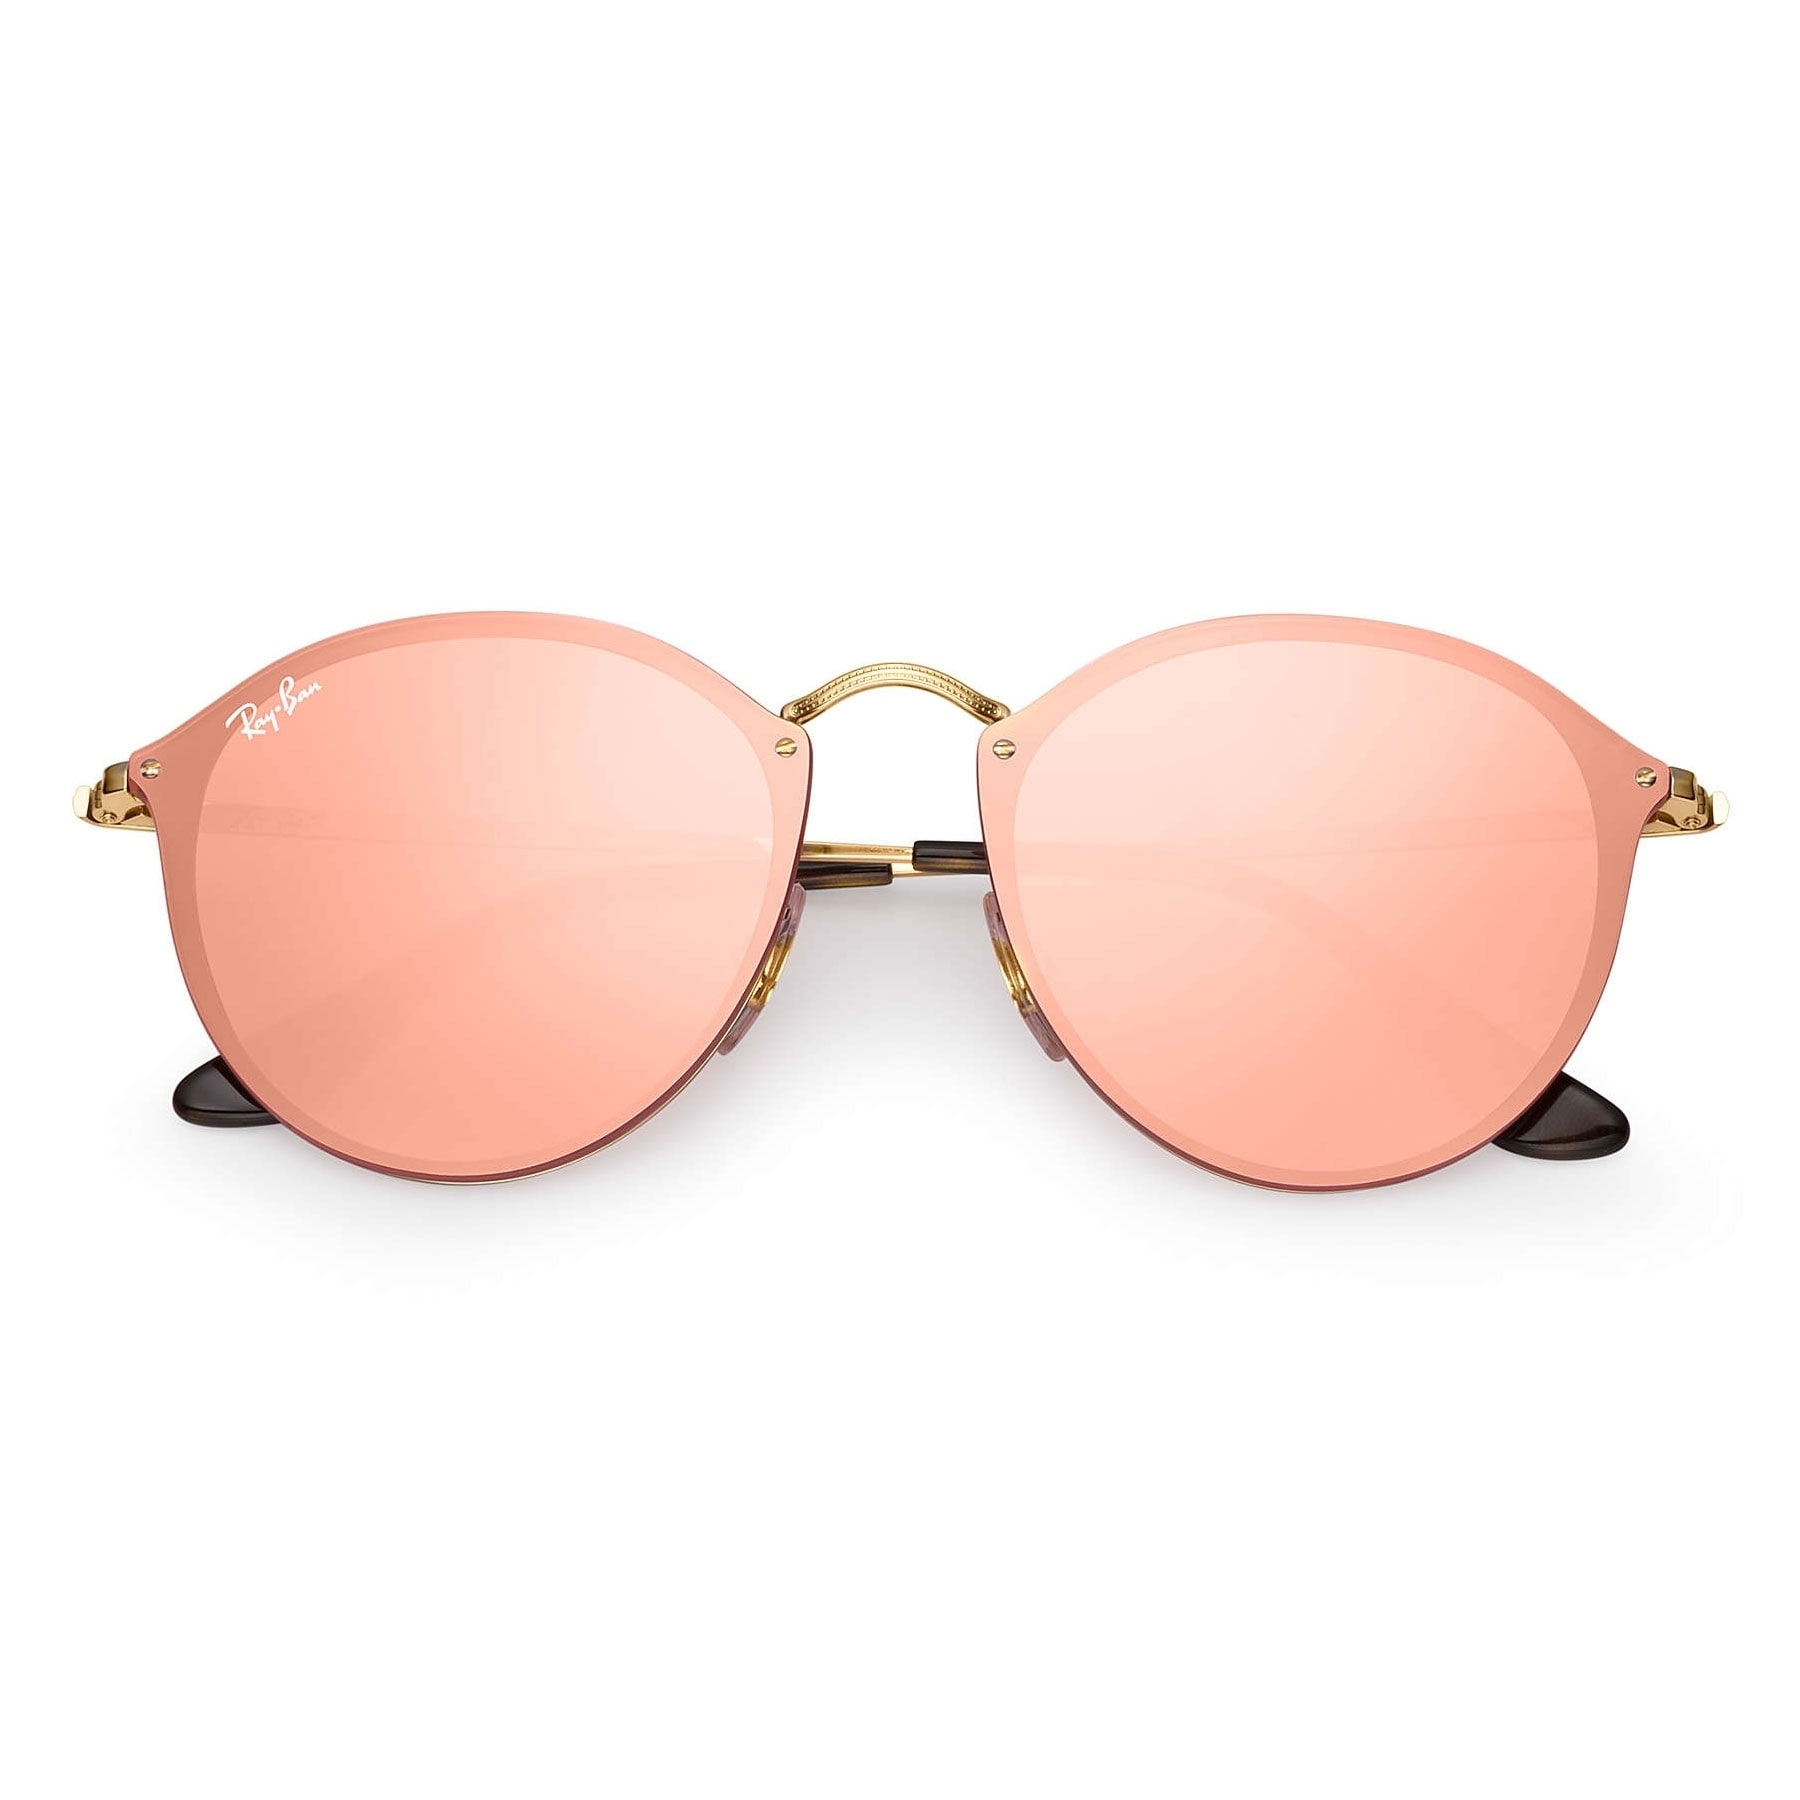 Shop Ray-Ban RB3574N Blaze Round Sunglasses Gold  Pink Mirror 59mm - Free  Shipping Today - Overstock.com - 20602396 c0810795e7